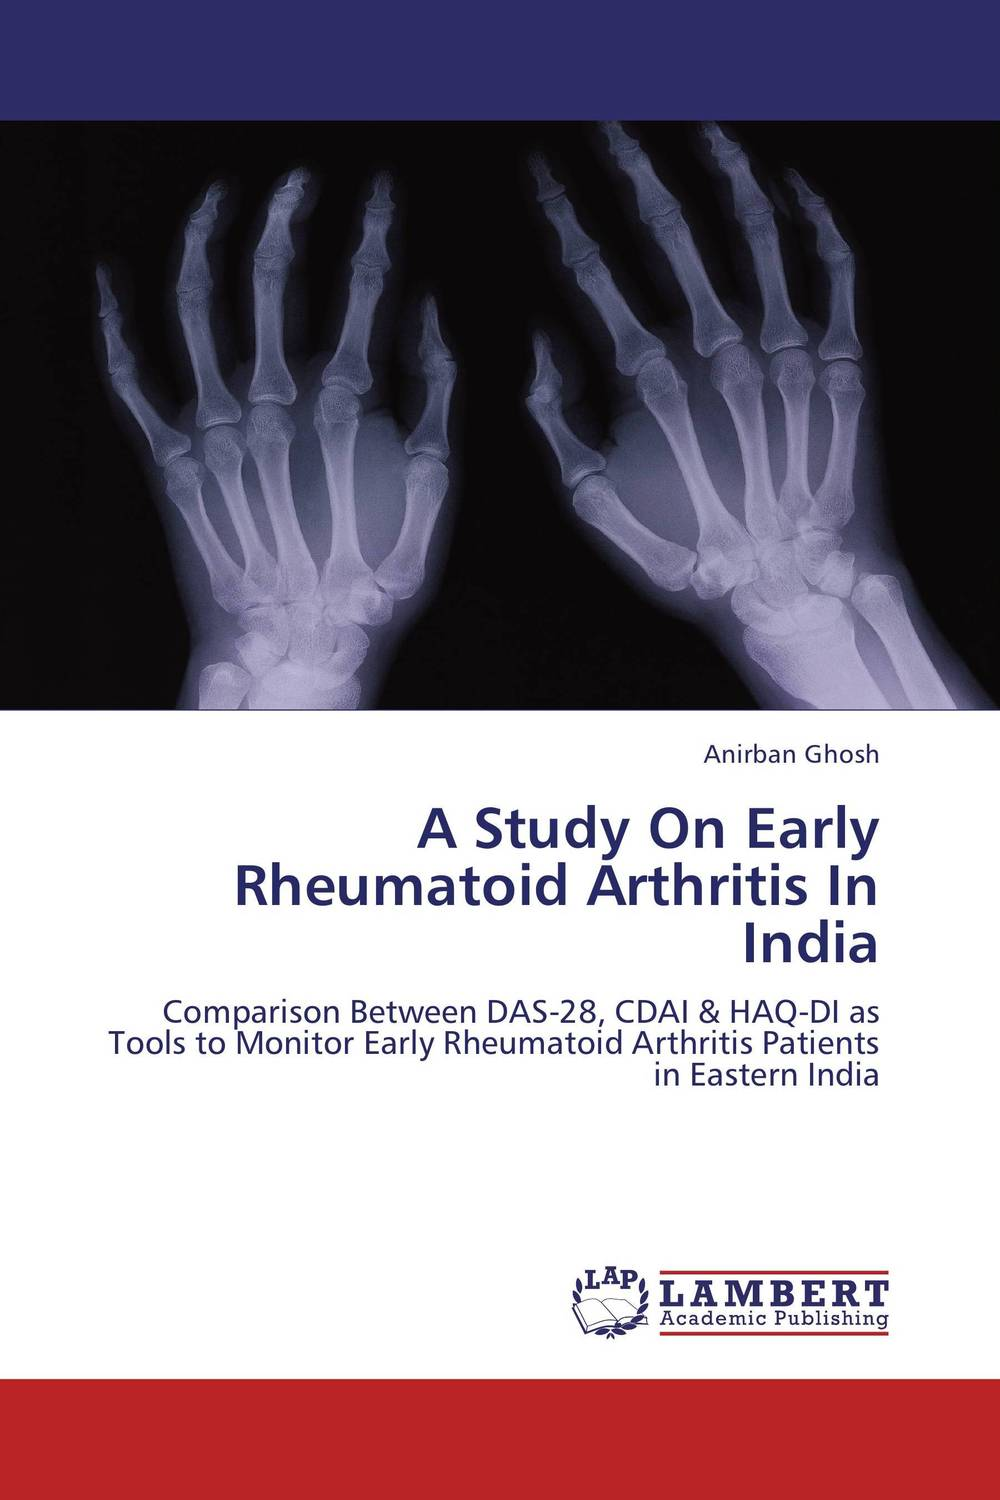 A Study On Early Rheumatoid Arthritis In India portable mini usb fans table fan air cooler air conditioner for home usb ventilator cooling cooler support left